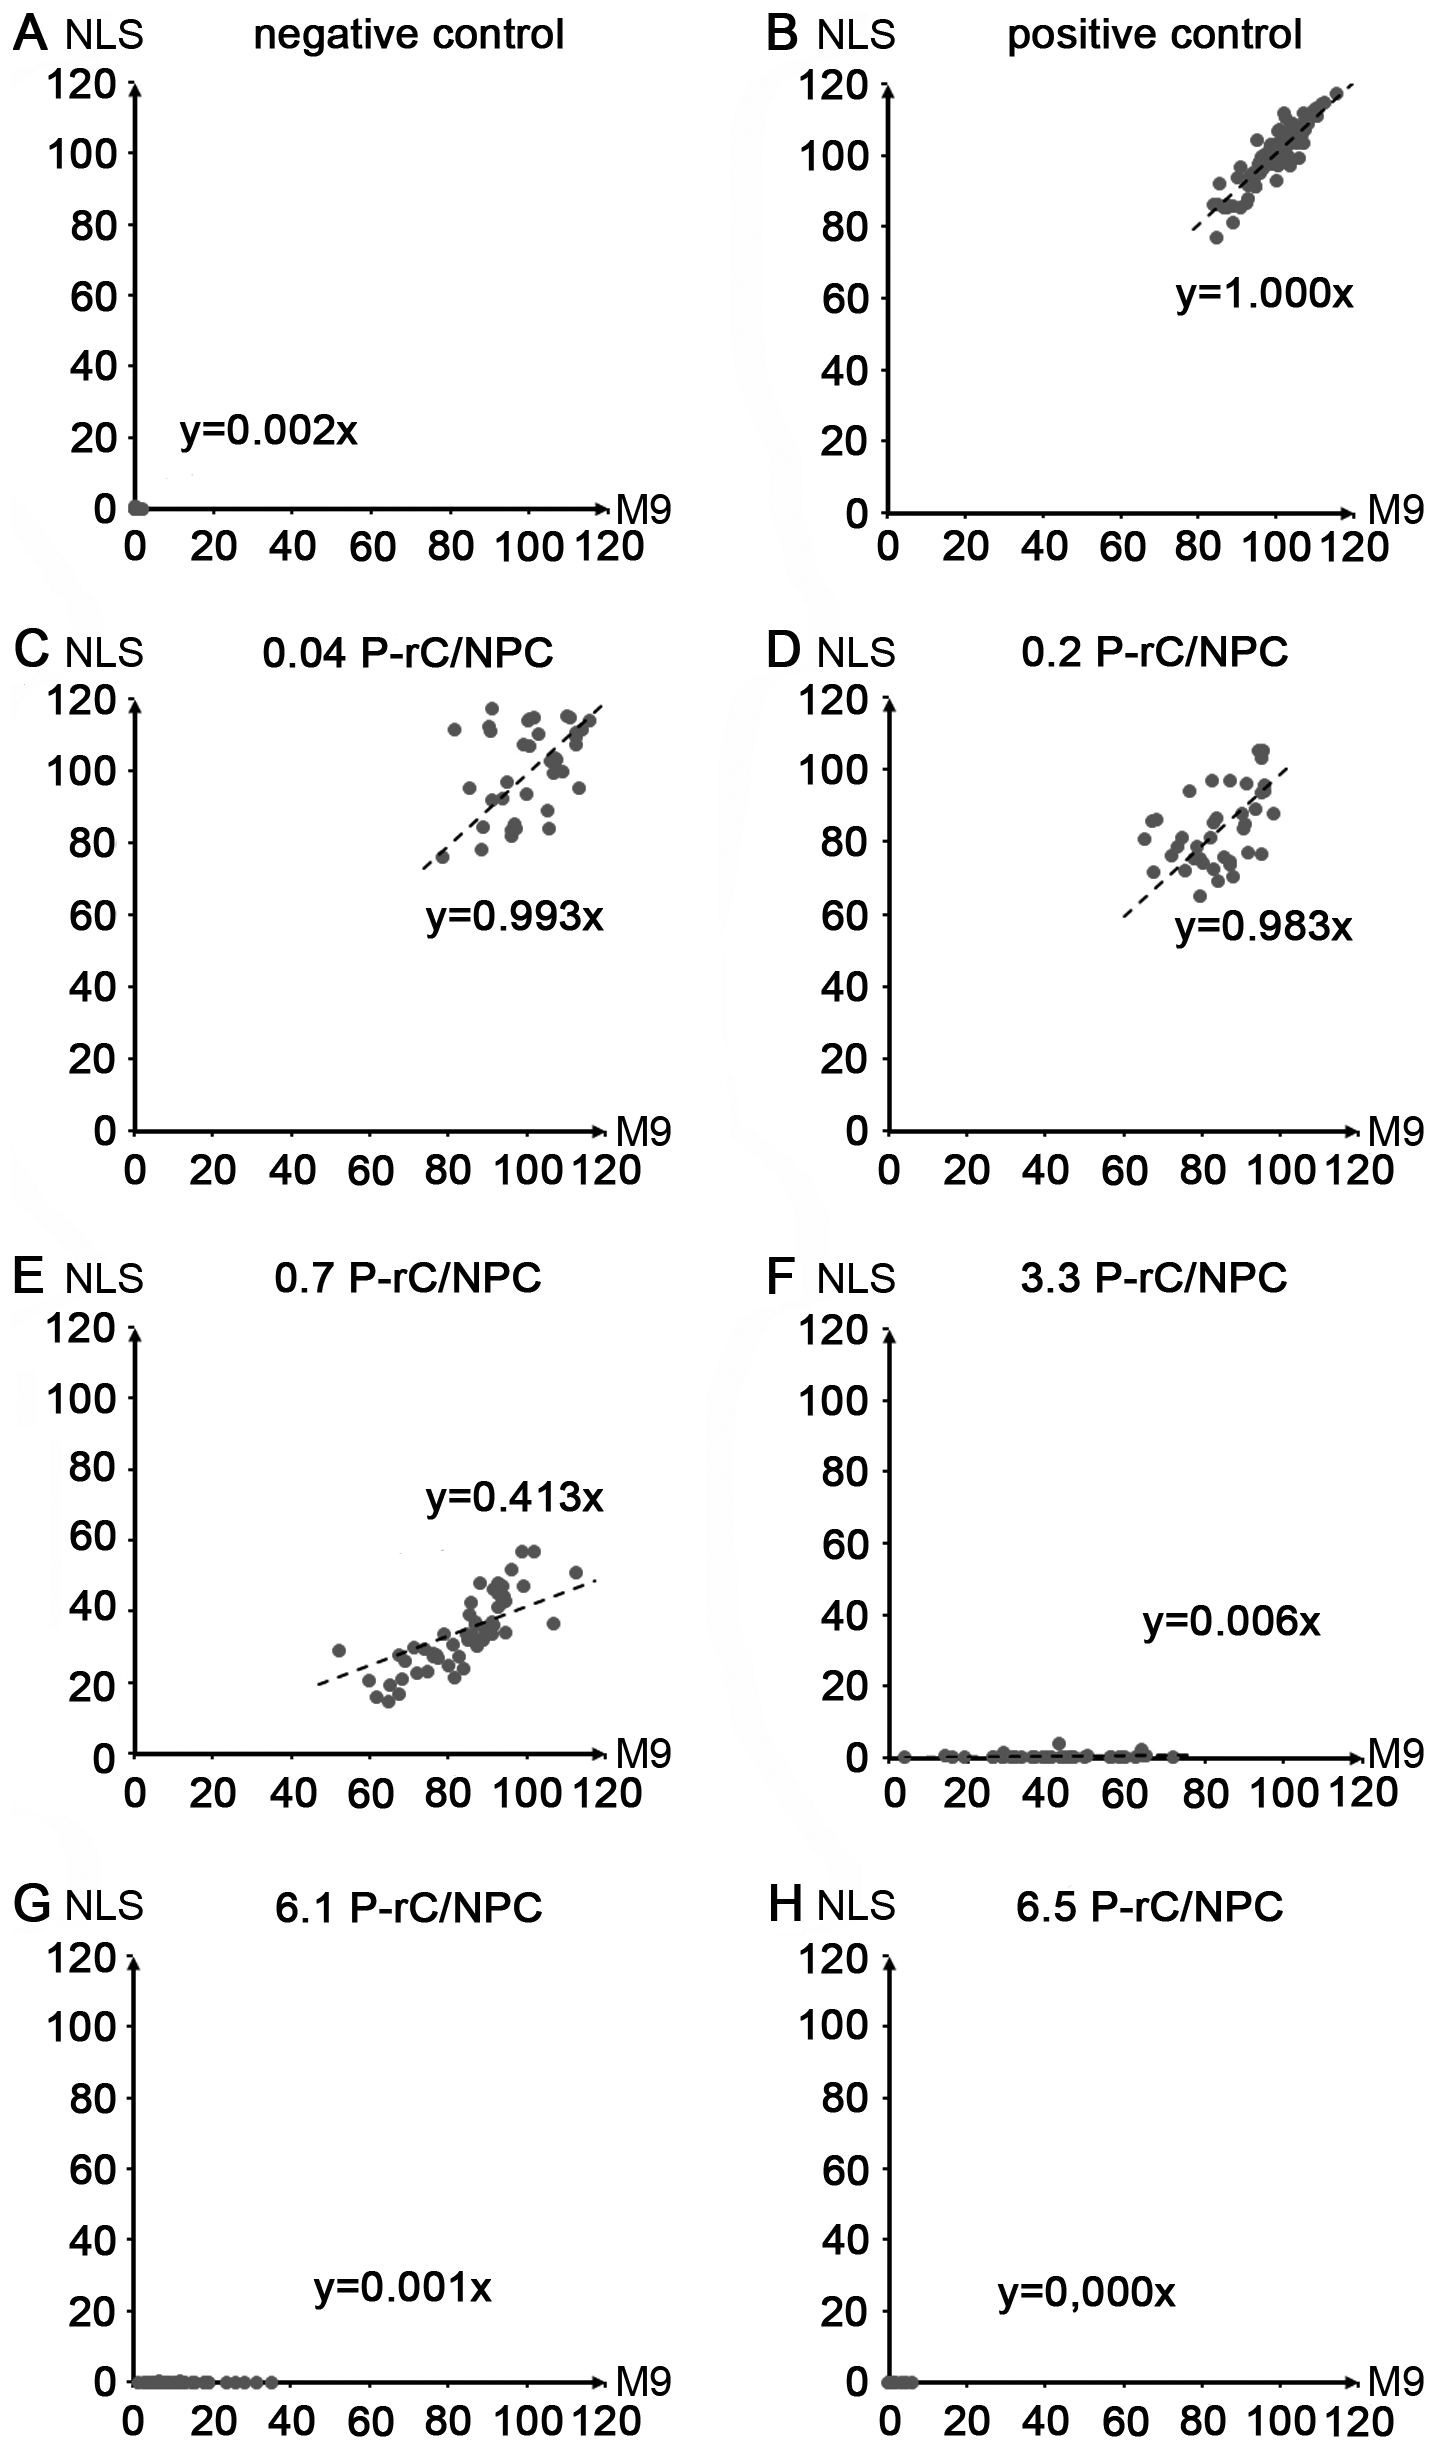 Scatter plots of the relative intranuclear concentrations of M9- and NLS-BSA in individual cells preloaded with P-rC.